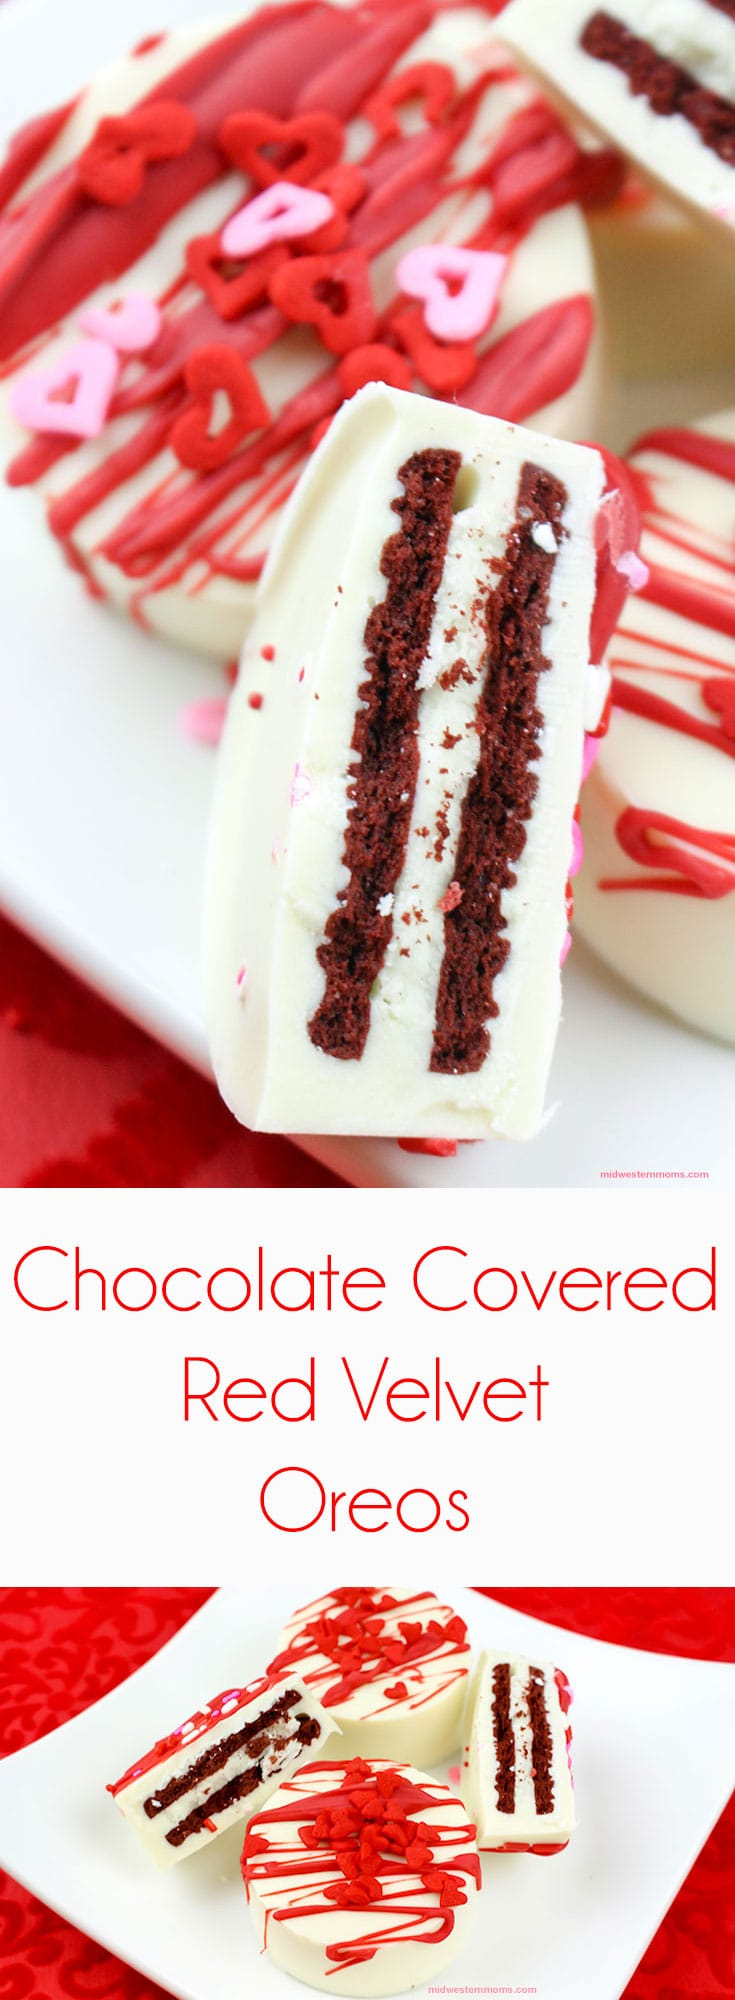 Simple and delicious chocolate covered Red Velvet Oreos! These no-bake cookies are perfect for Valentine's Day treats.